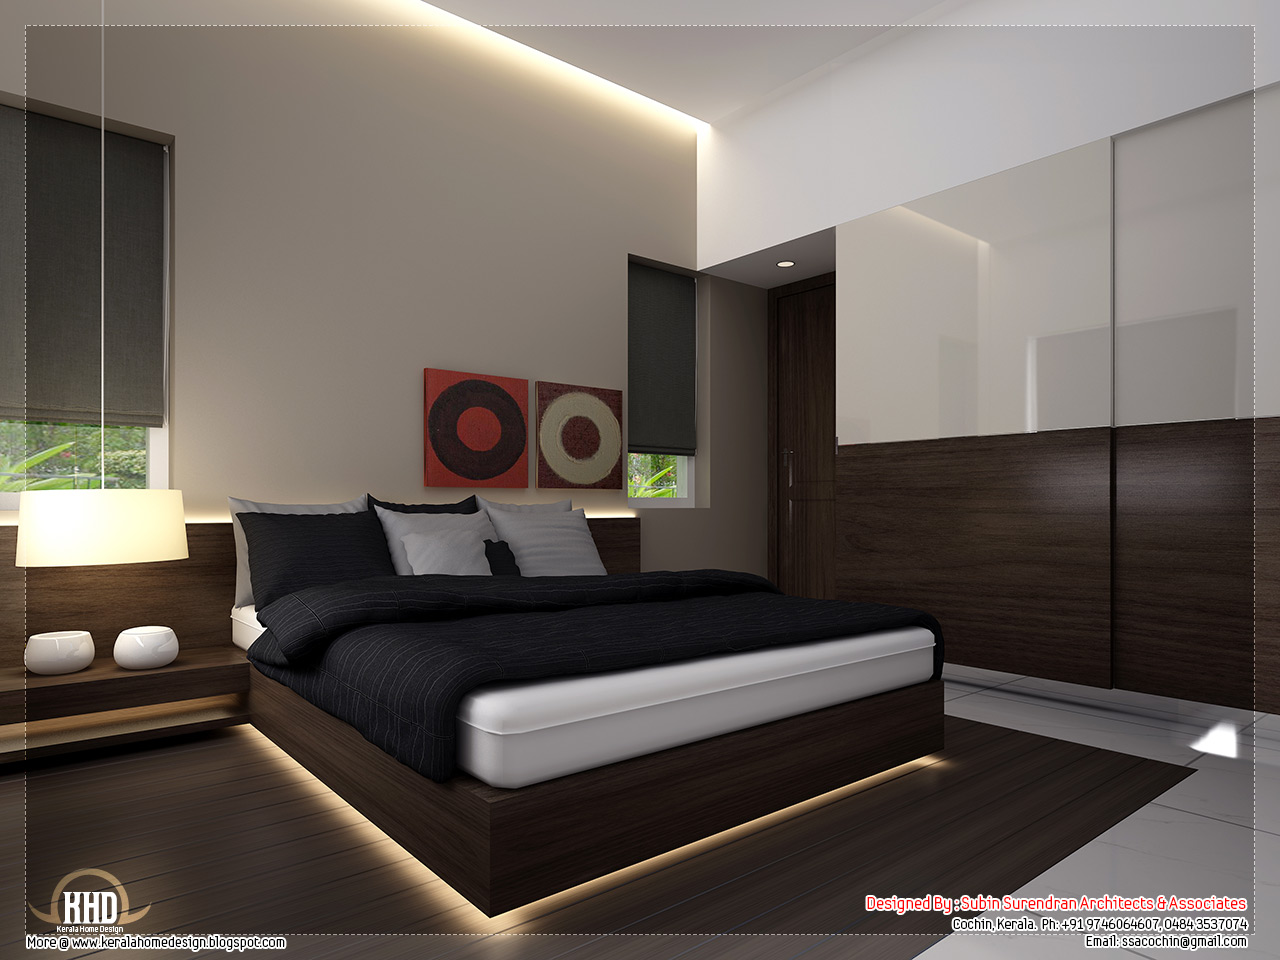 Beautiful home interior designs kerala home design and for Interior design ideas for bedroom